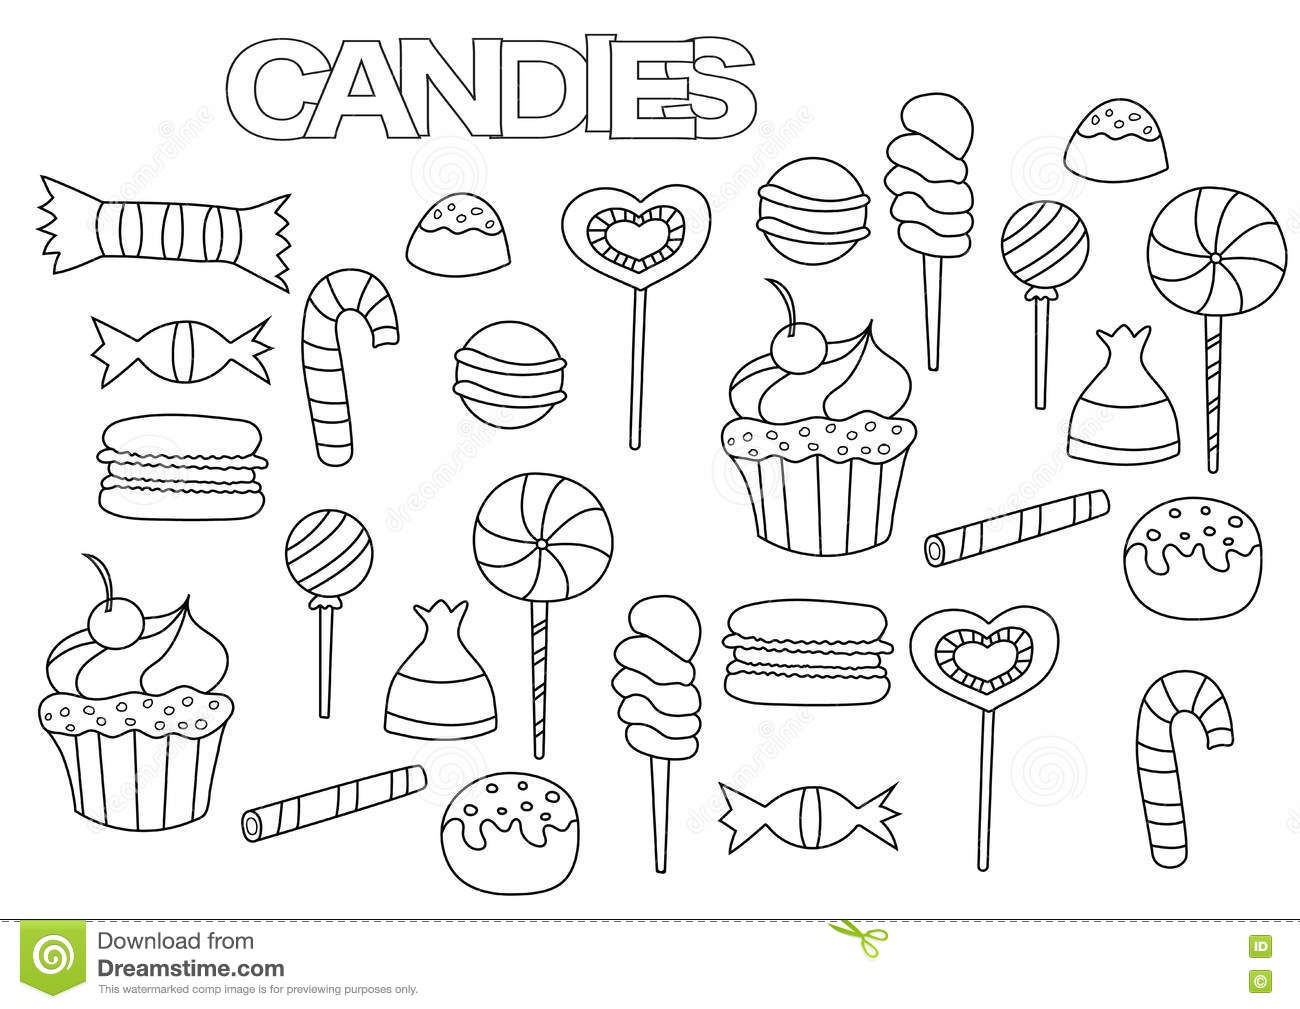 Royalty Free Vector Download Hand Drawn Candy Bar Set Coloring Book Page Template